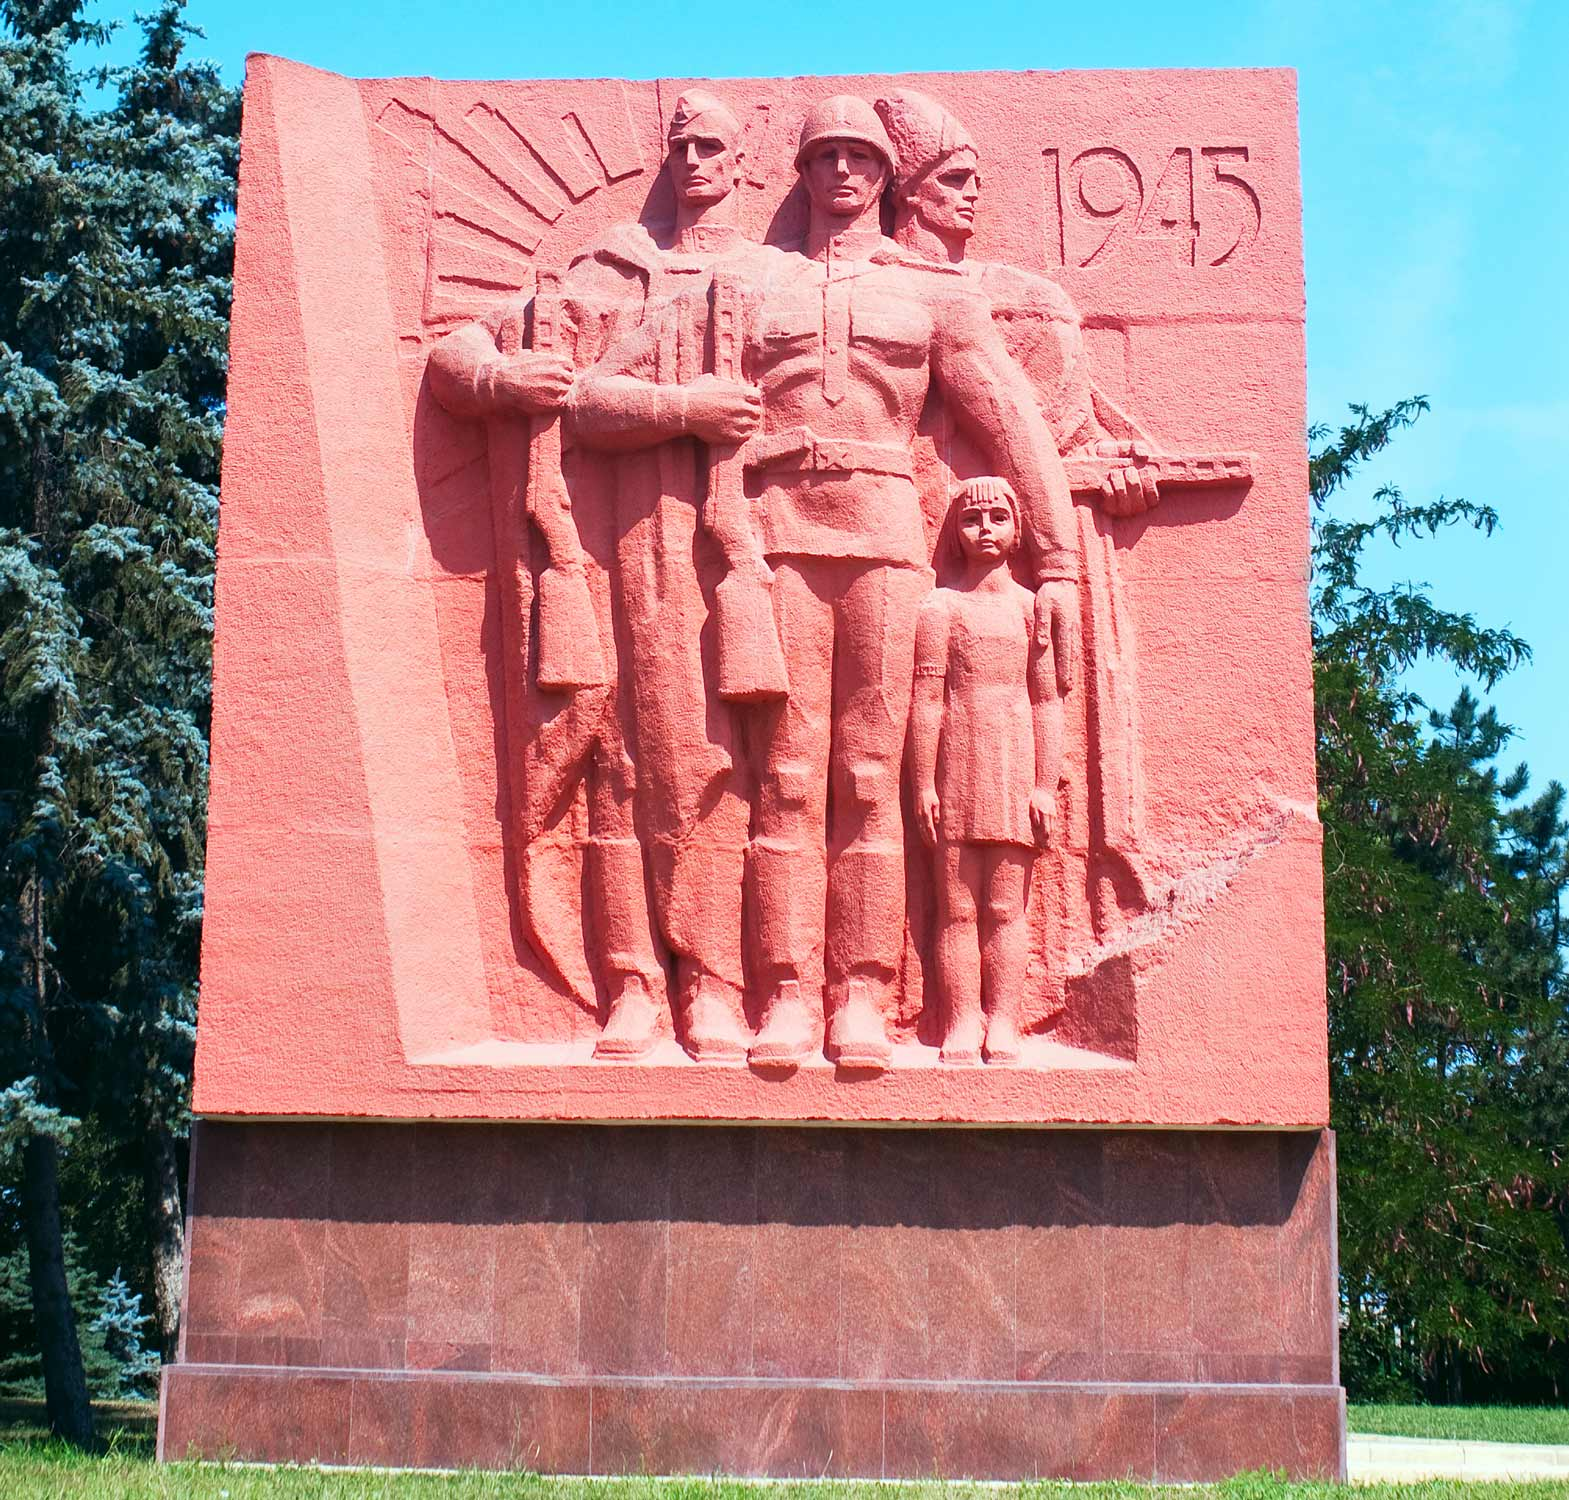 World War II monument with Soviet soldiers and young girl with 1945 inscription with sky in Chisinau memorial complex